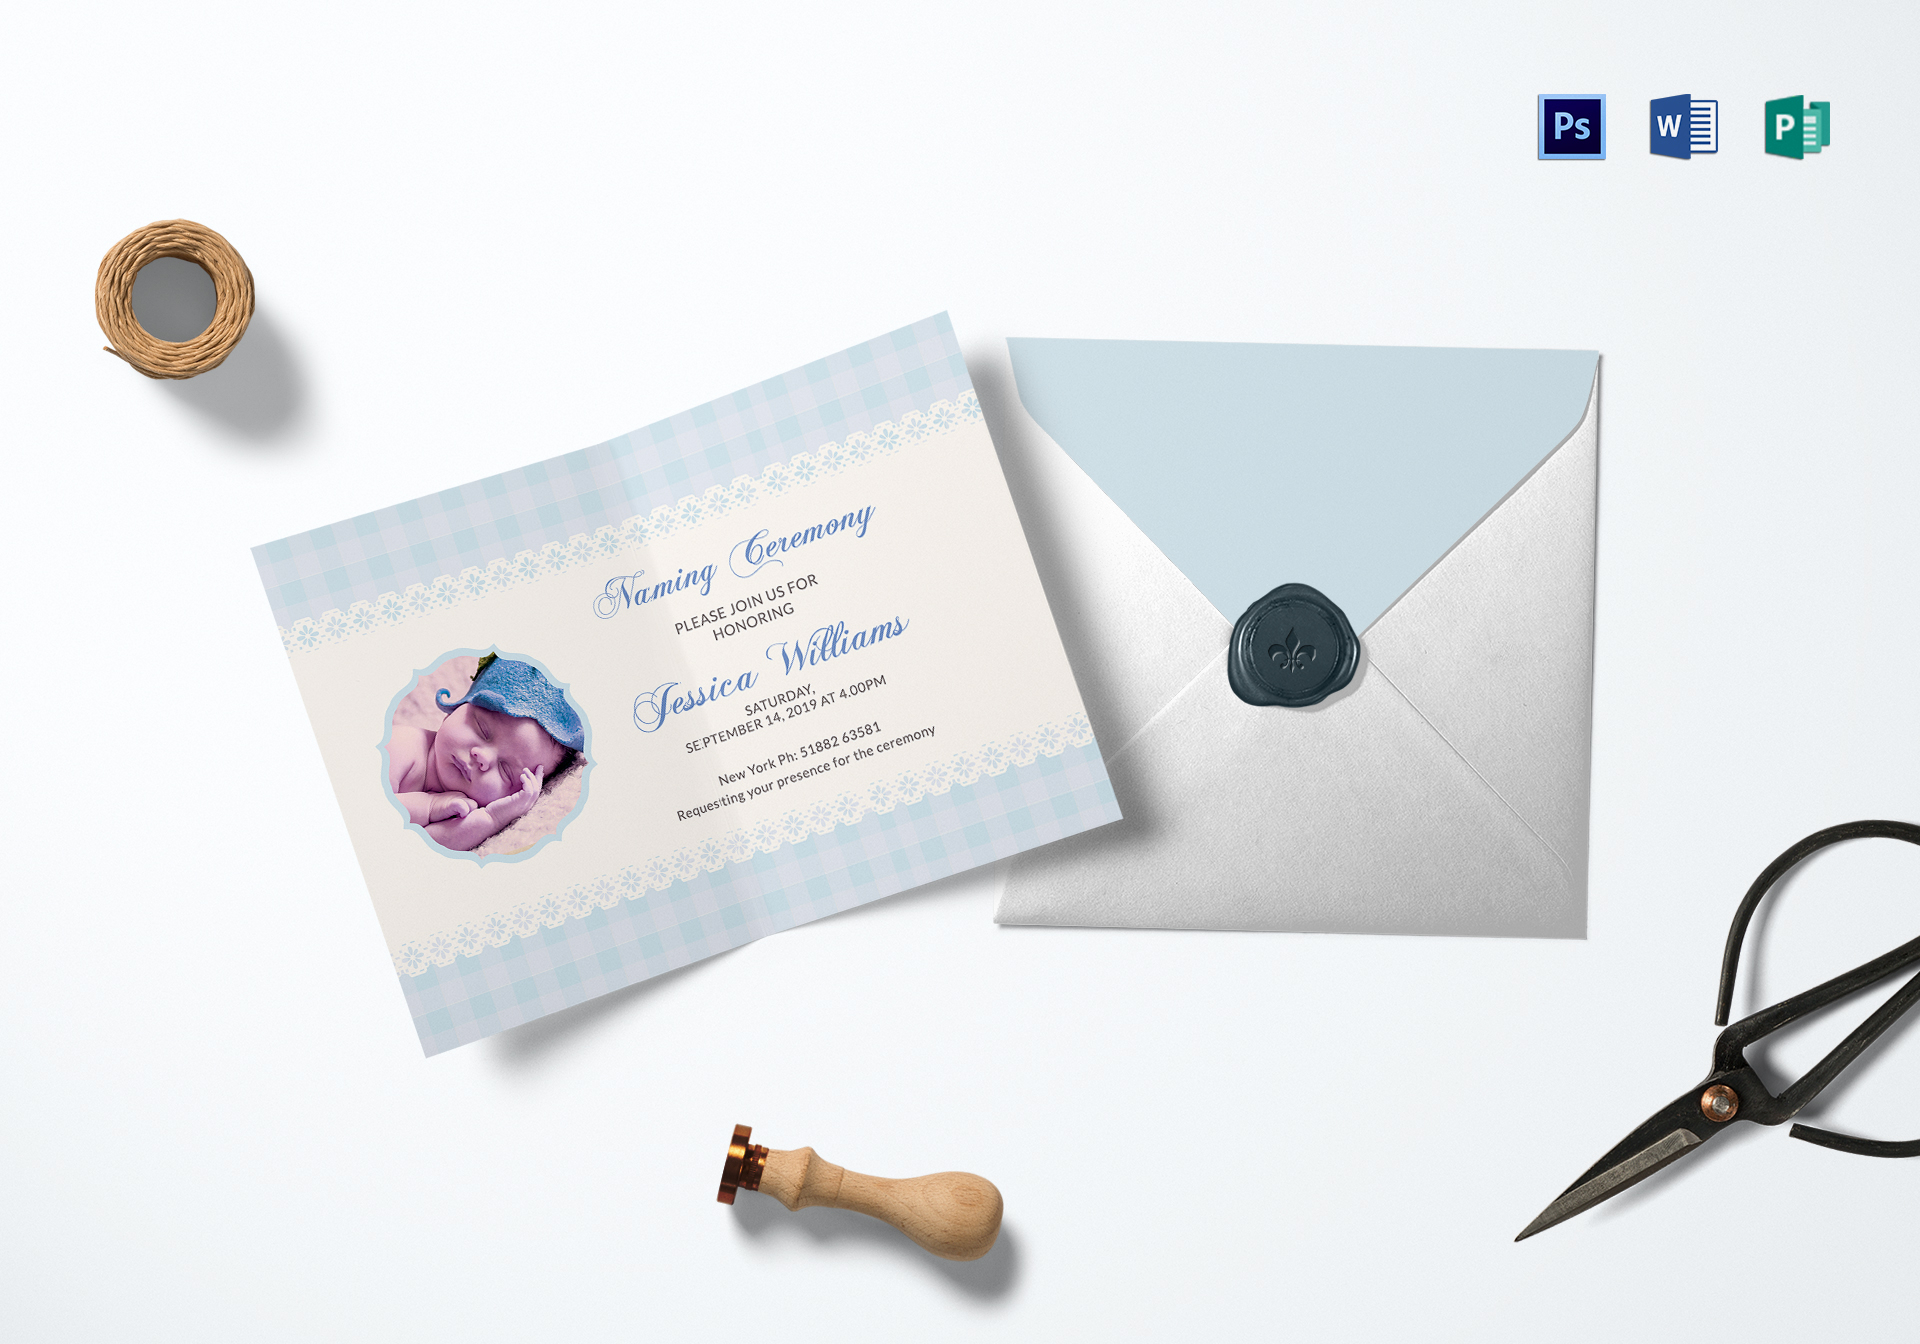 Wonderful Baby Naming Ceremony Invitation Card Design Template In